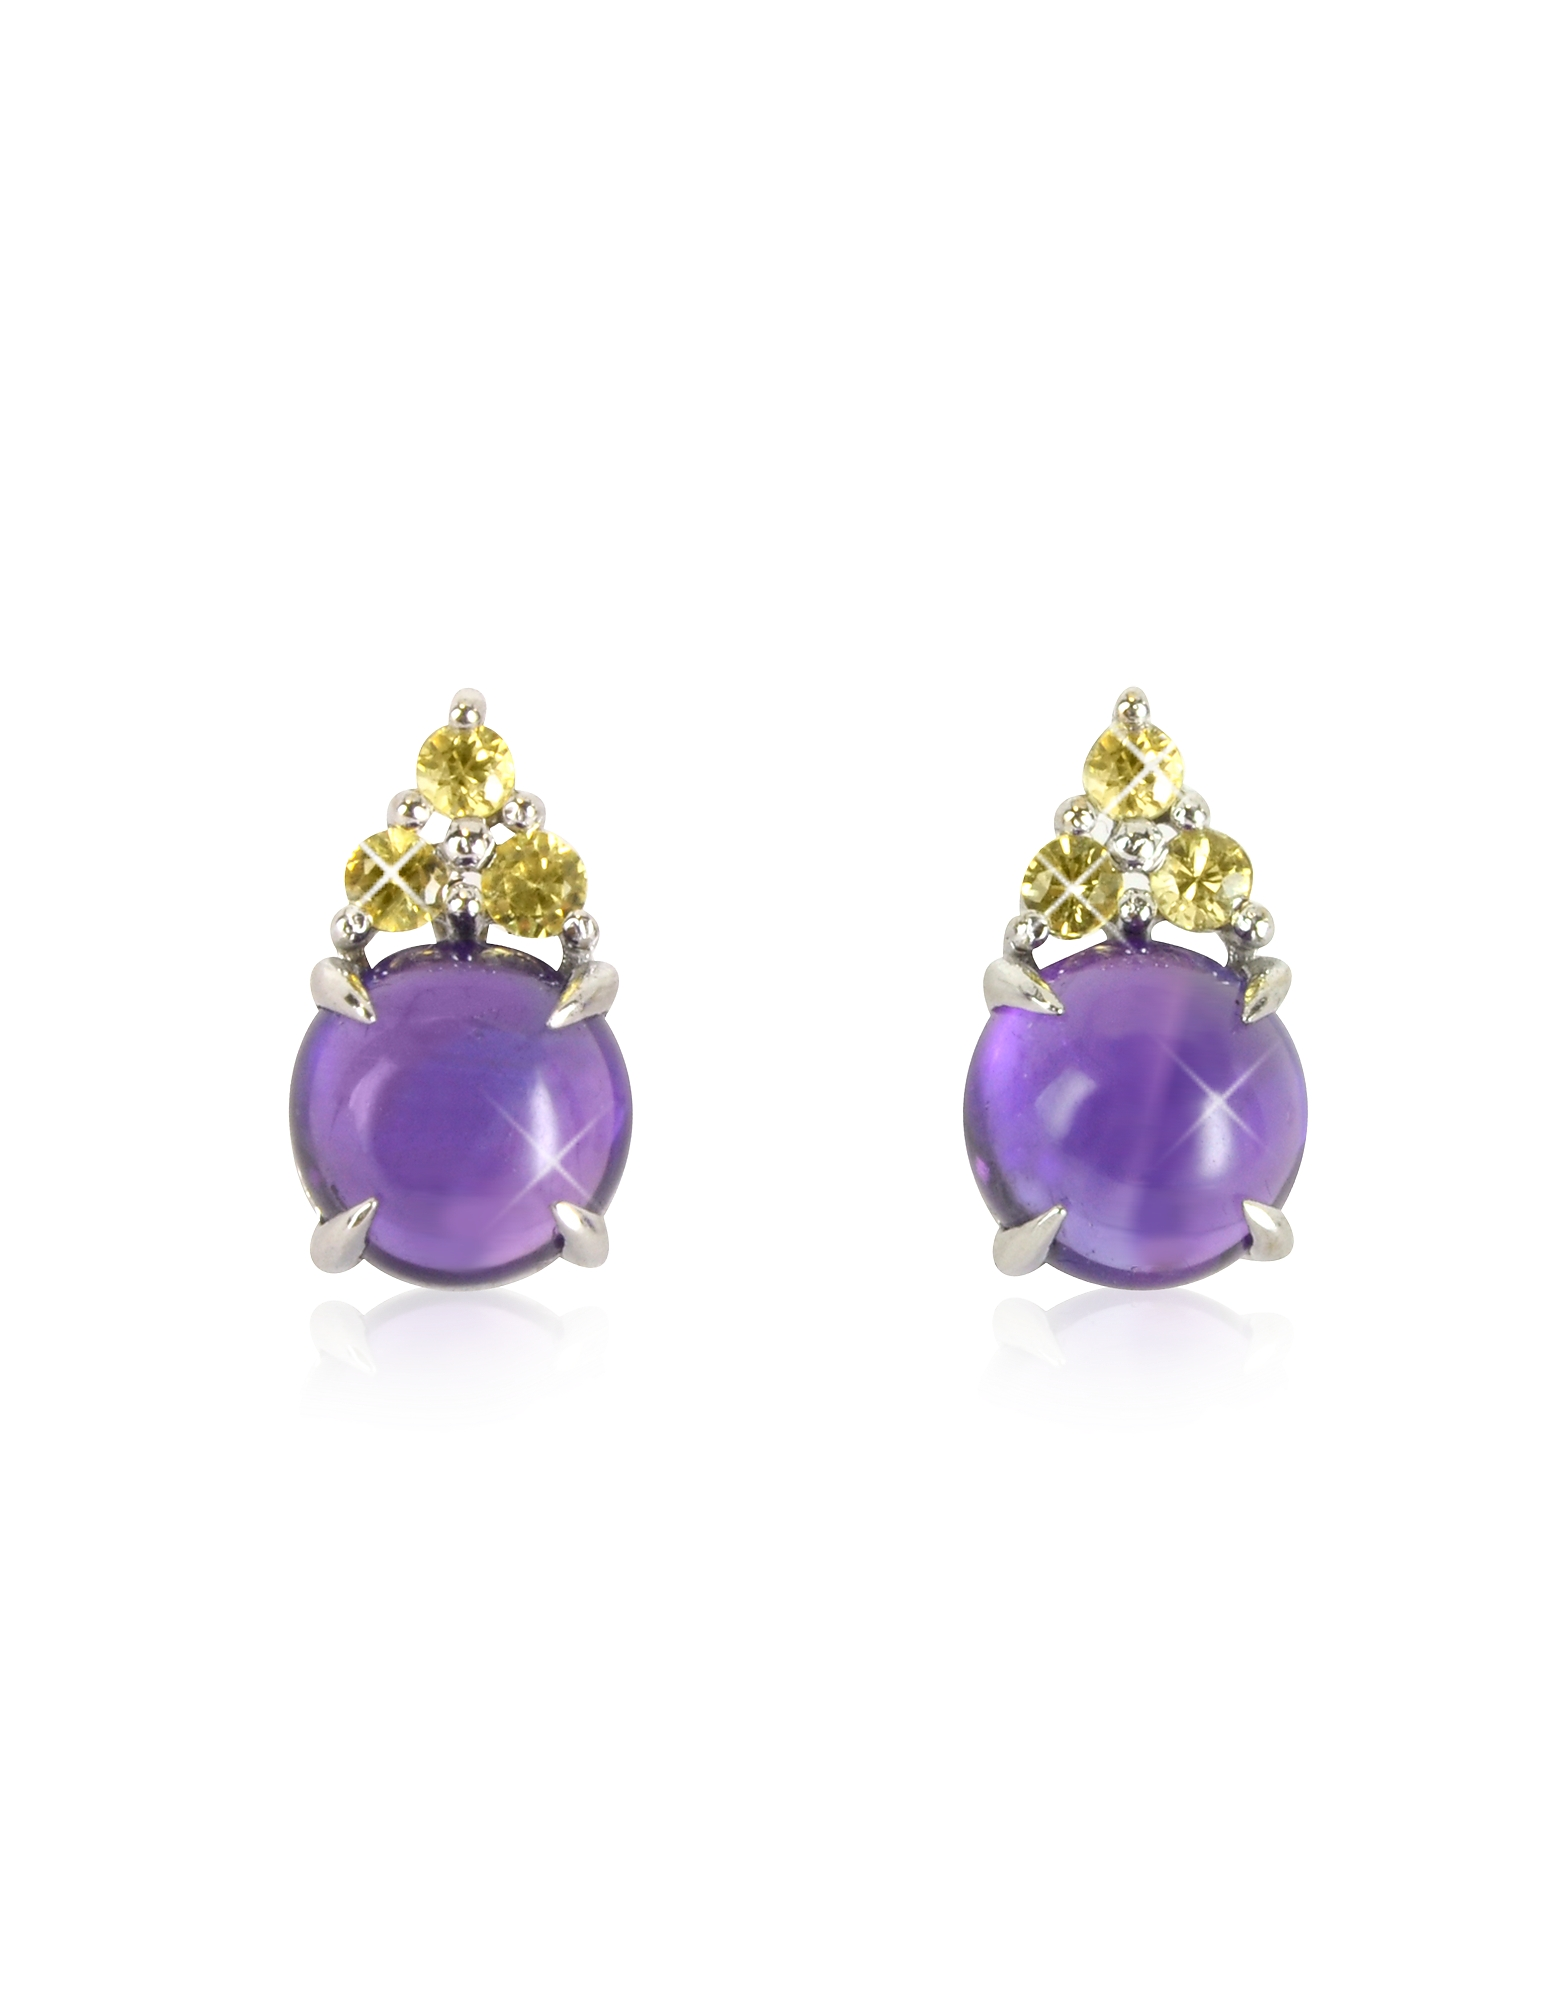 Mia & Beverly Earrings, Amethyst and Yellow Sapphires 18K White Gold Earrings